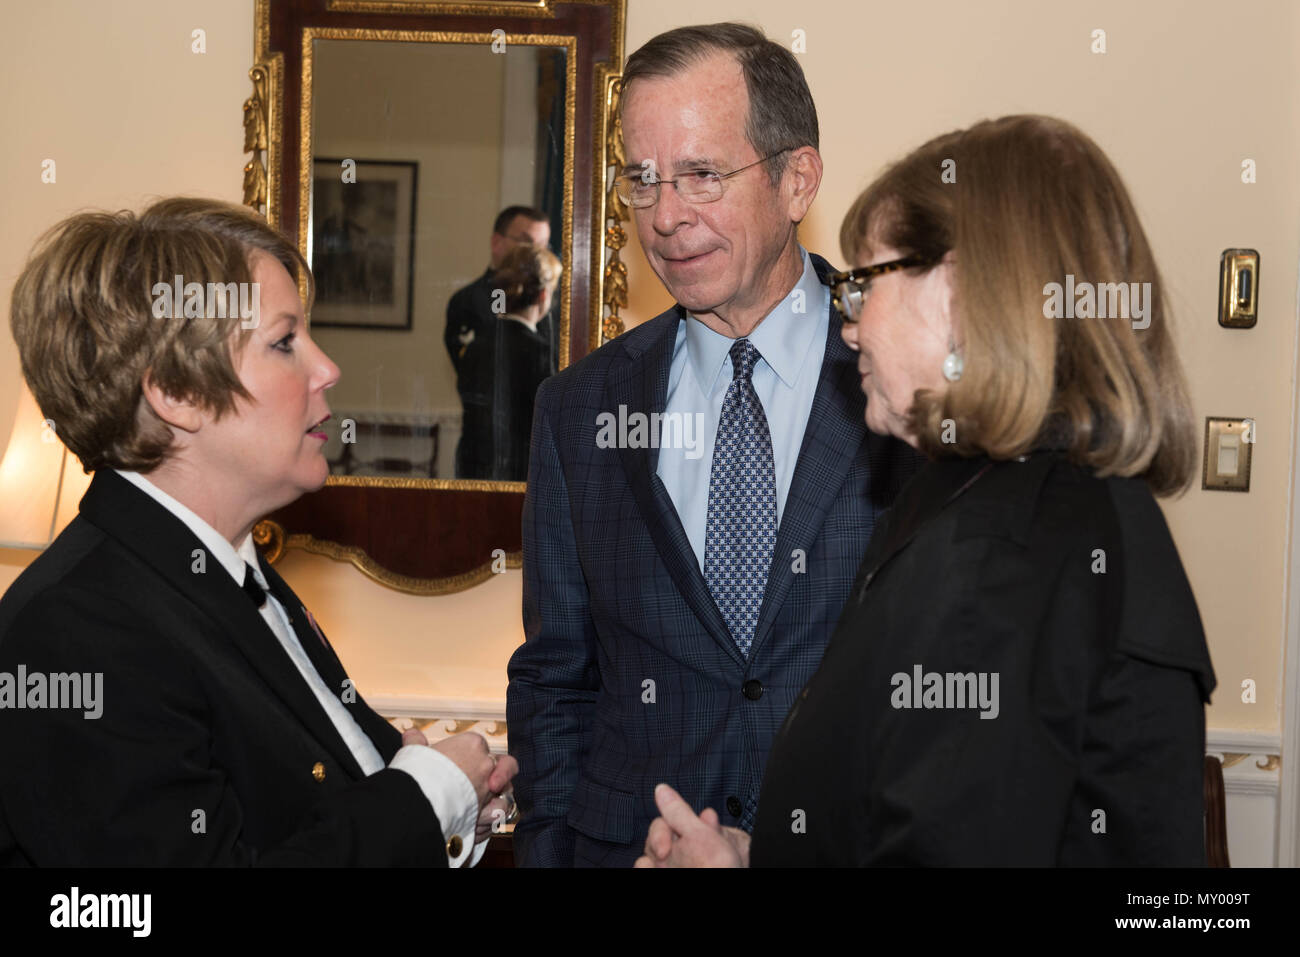 161218-N-HG258-017 WASHINGTON (Dec. 18, 2016) Chief Petty Officer Shana Sullivan, left, meets former Chairman of the Joint Chiefs of Staff, Adm. Michael Mullen, right, backstage after the Sunday afternoon Navy Band Holiday Concert held at DAR Constitiution Hall in Washington, D.C. The Navy Band hosted thousands of people from the Washington area as well as hundreds of senior Navy and government officials during its three annual holiday concerts.  (U.S. Navy photo by Senior Chief Petty Officer Stephen Hassay/Released) - Stock Image